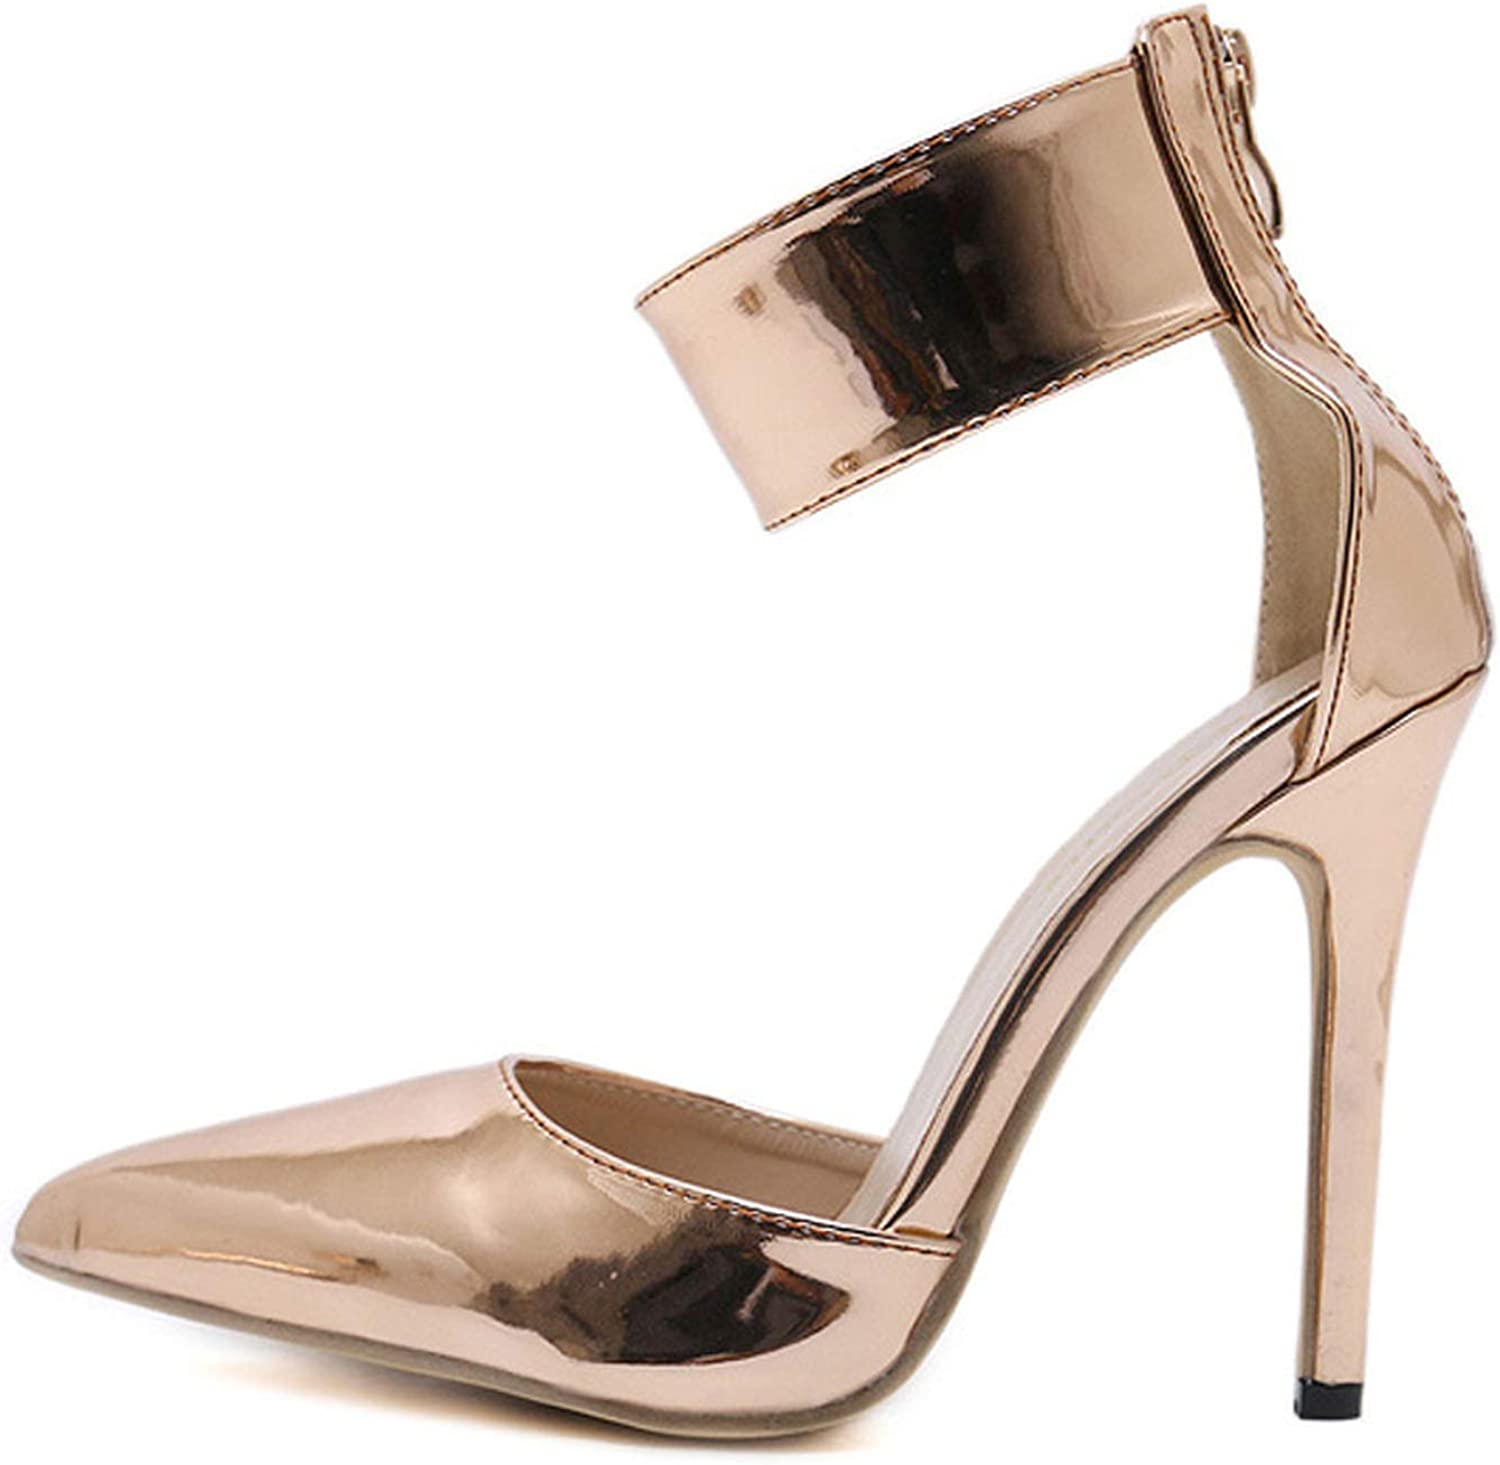 IOJHOIJOIJOIJMO Champagne Gladiator Women Pumps Zipper Pointed Toe High Heels Sexy Lady shoes Thin Heels